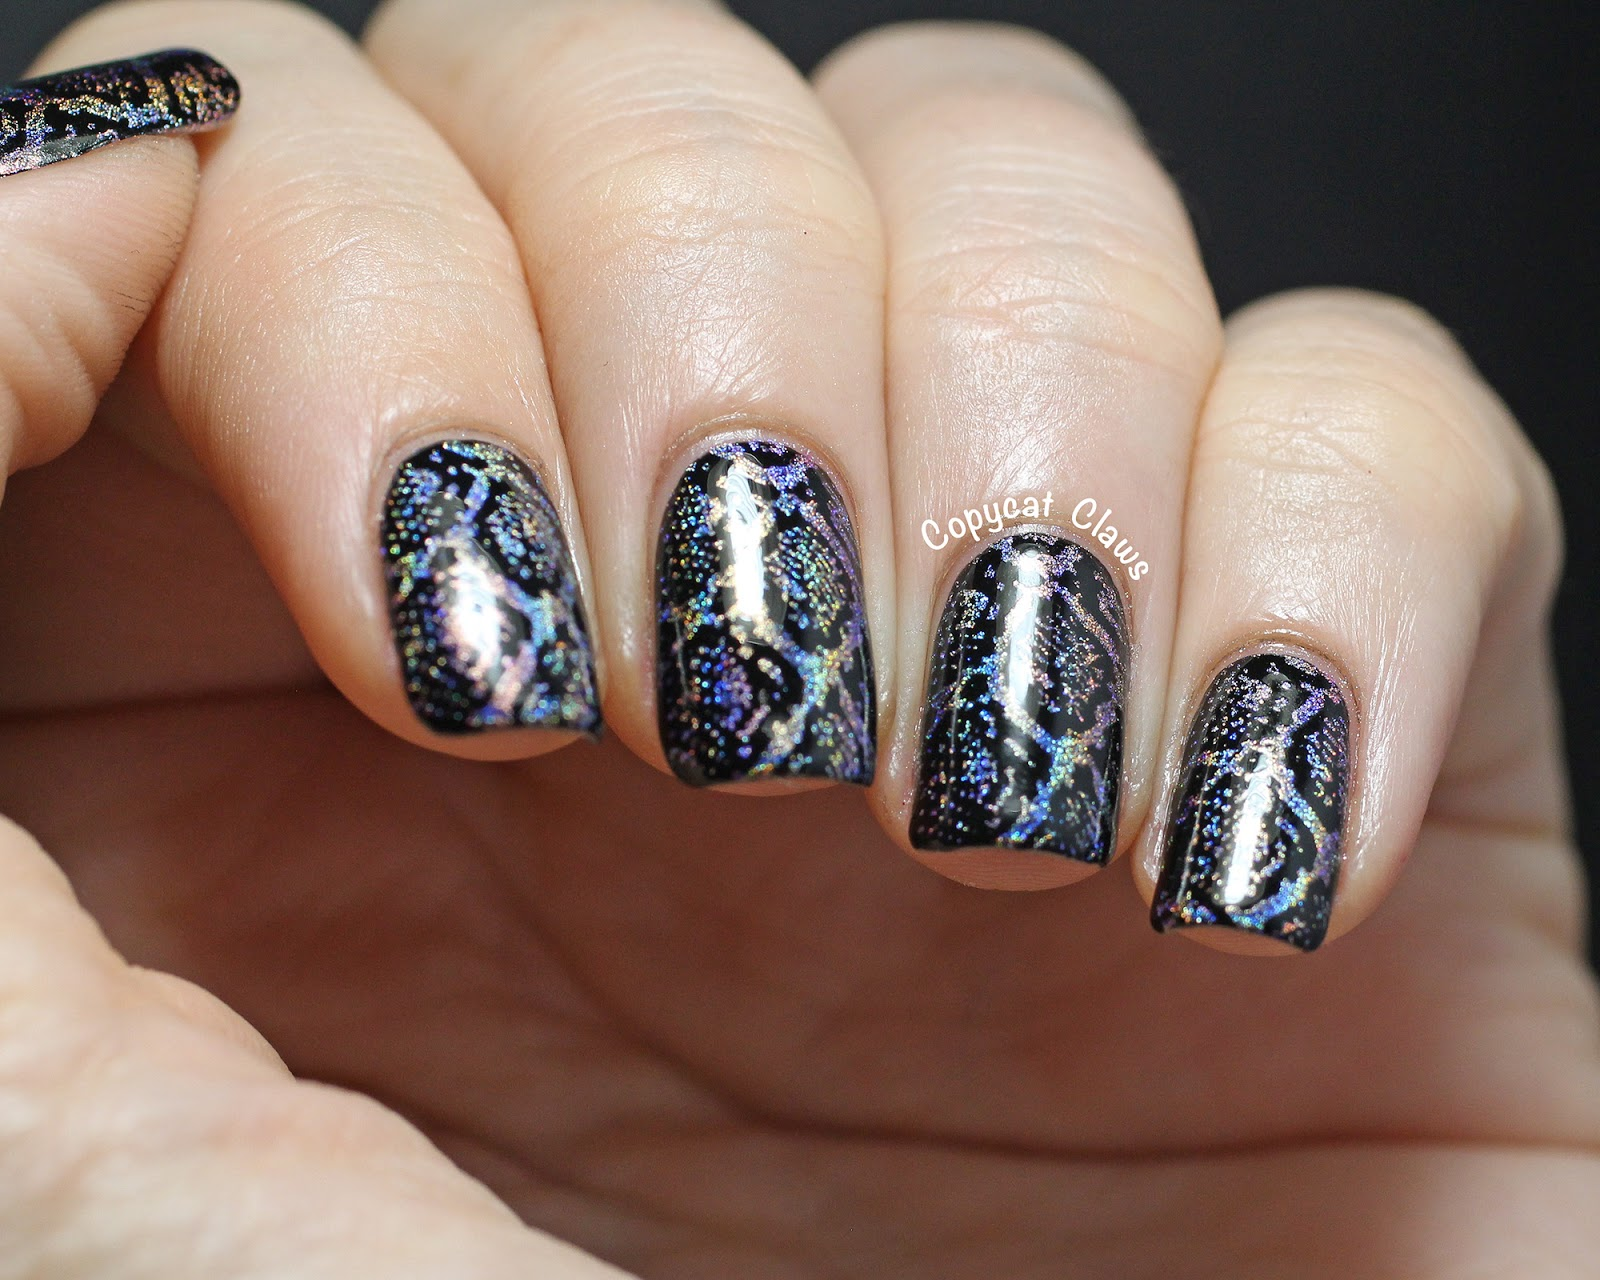 Copycat Claws: Holographic Snakeskin Nail Stamping